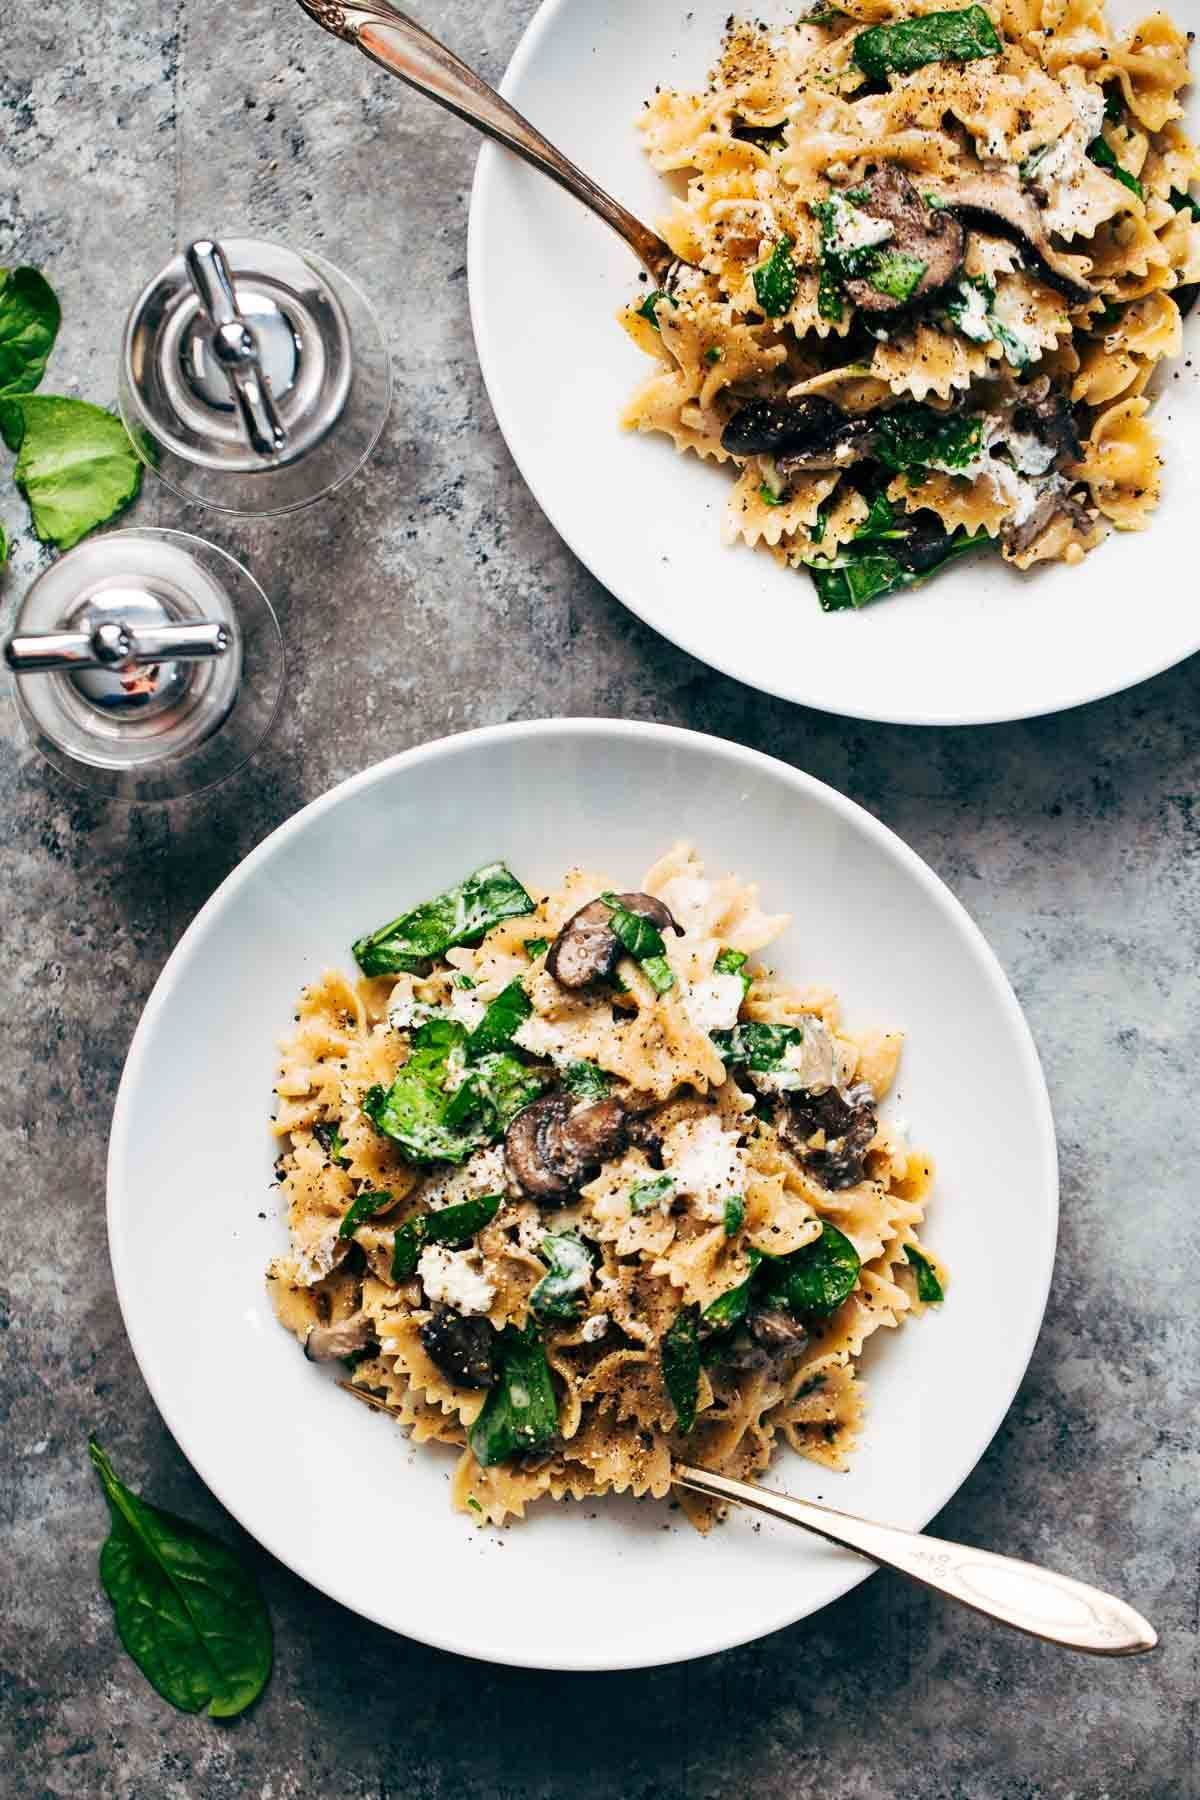 Mushroom Pasta With Goat Cheese In Two White Bowls Forks